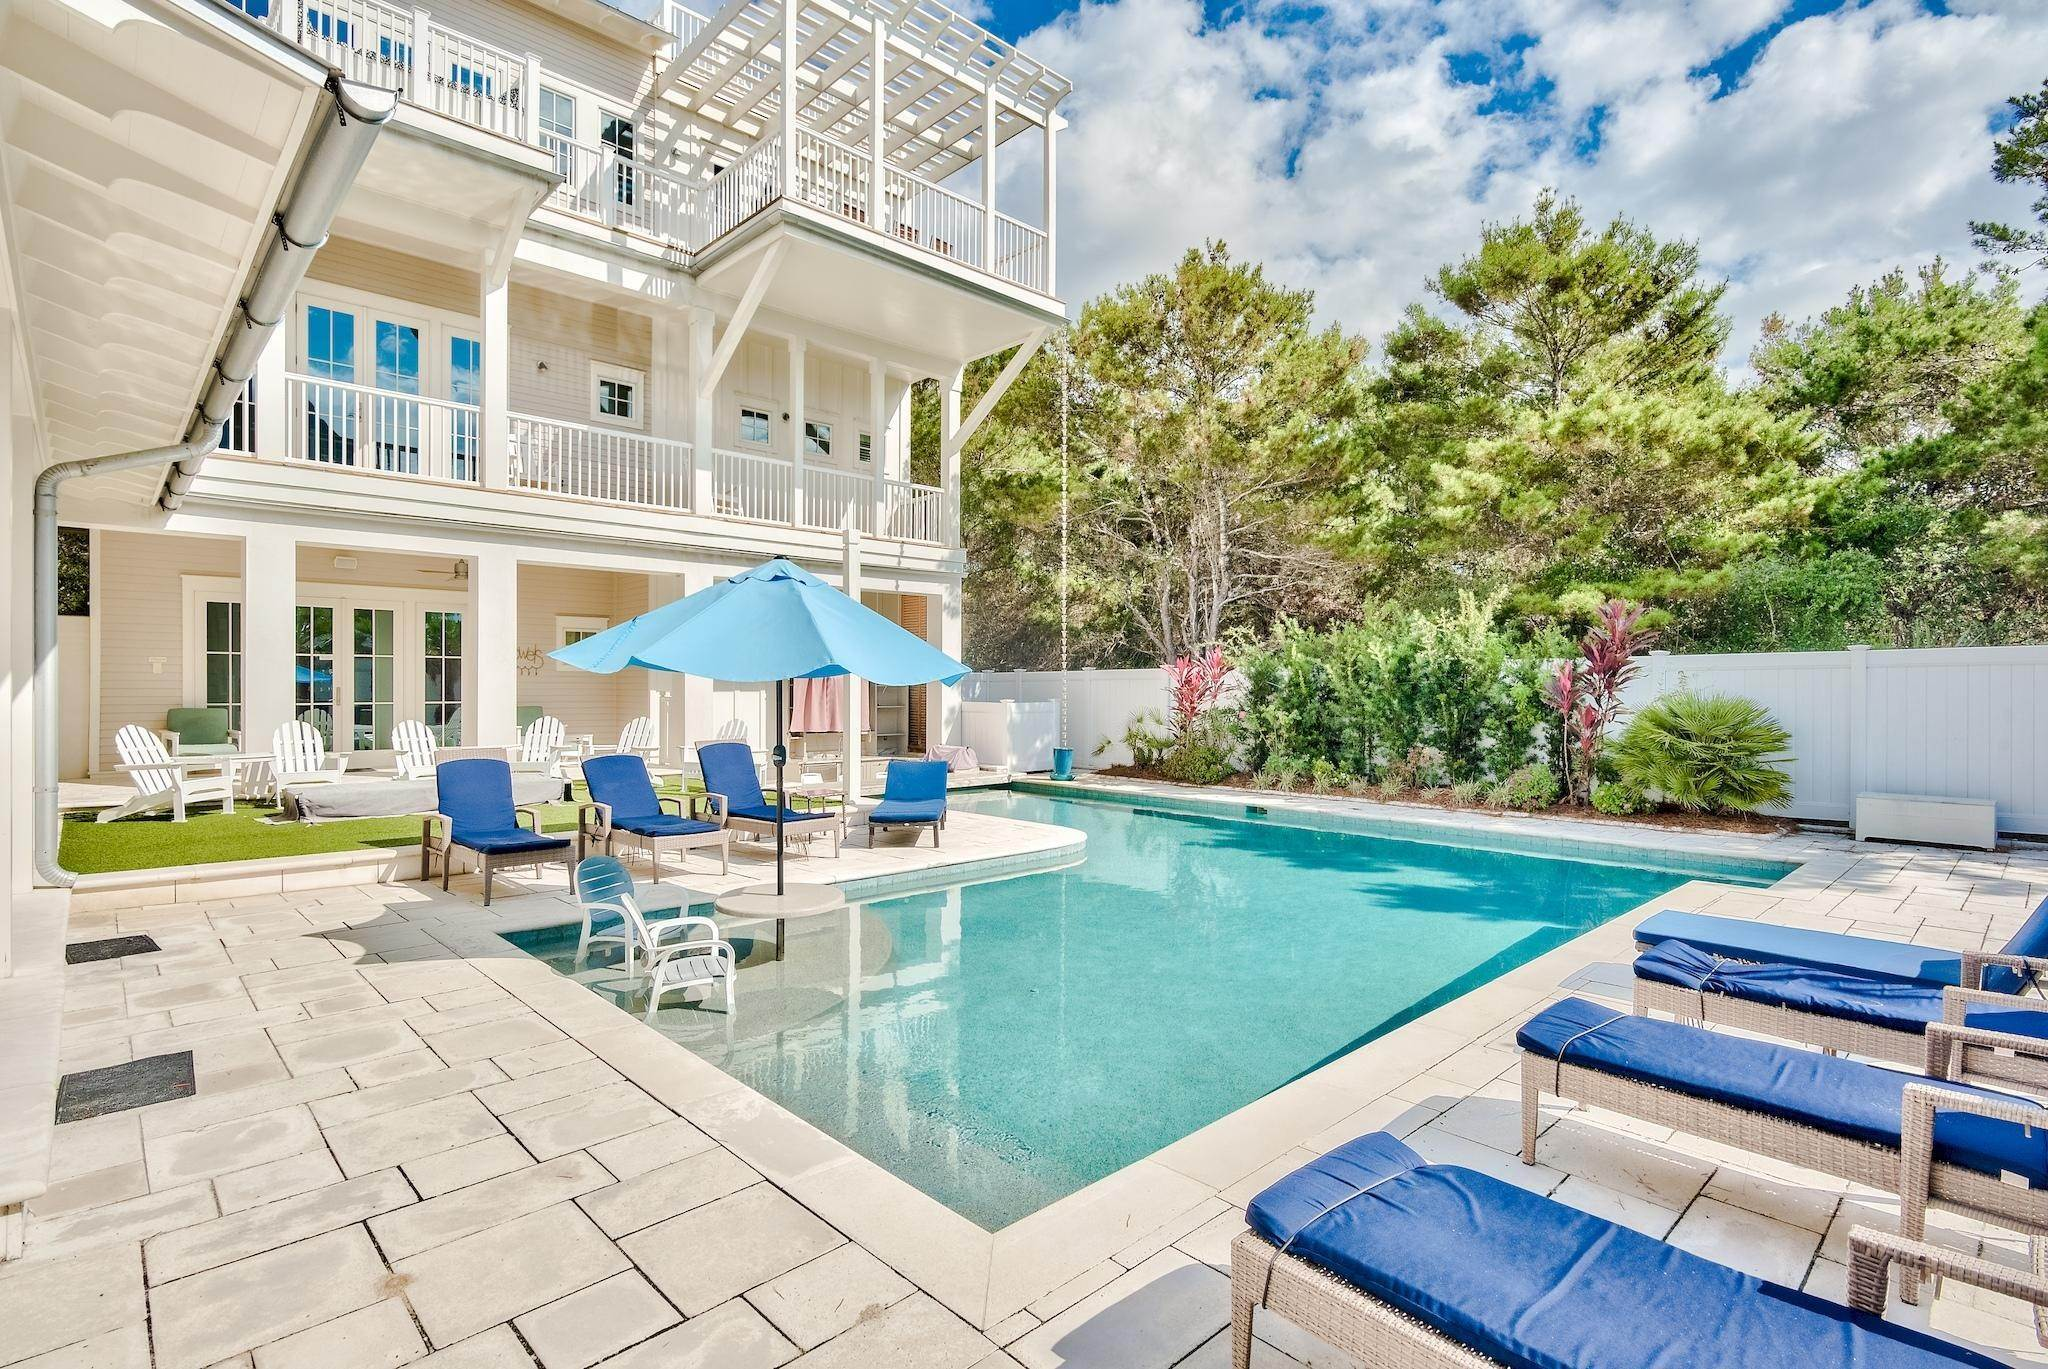 7. Single Family Home for Sale at 325 Walton Rose Lane Inlet Beach, Florida,32461 United States